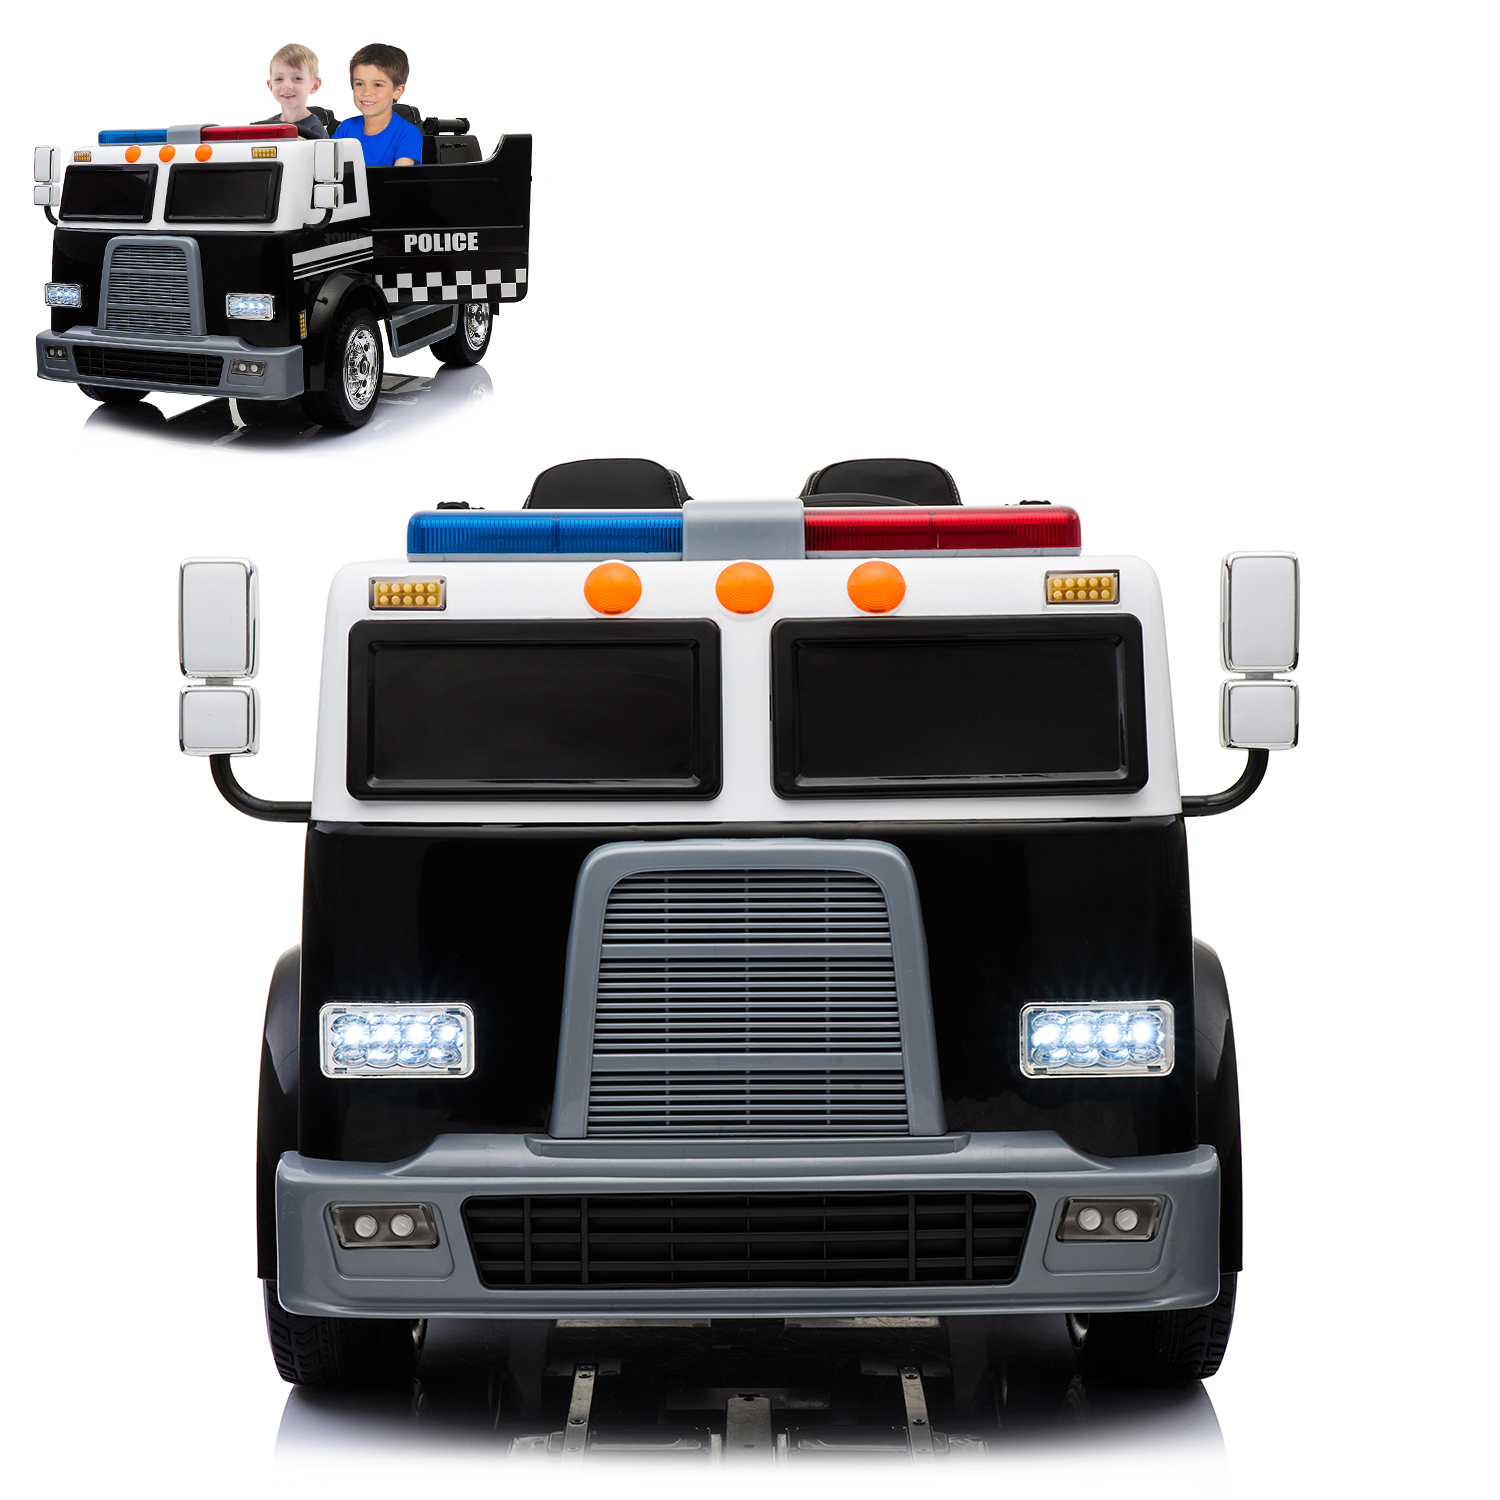 Police Truck Electric Ride On Car 2 Seats With Remote Control For Kids | 12V Power Battery Kid Car To Drive... by Modern-depo